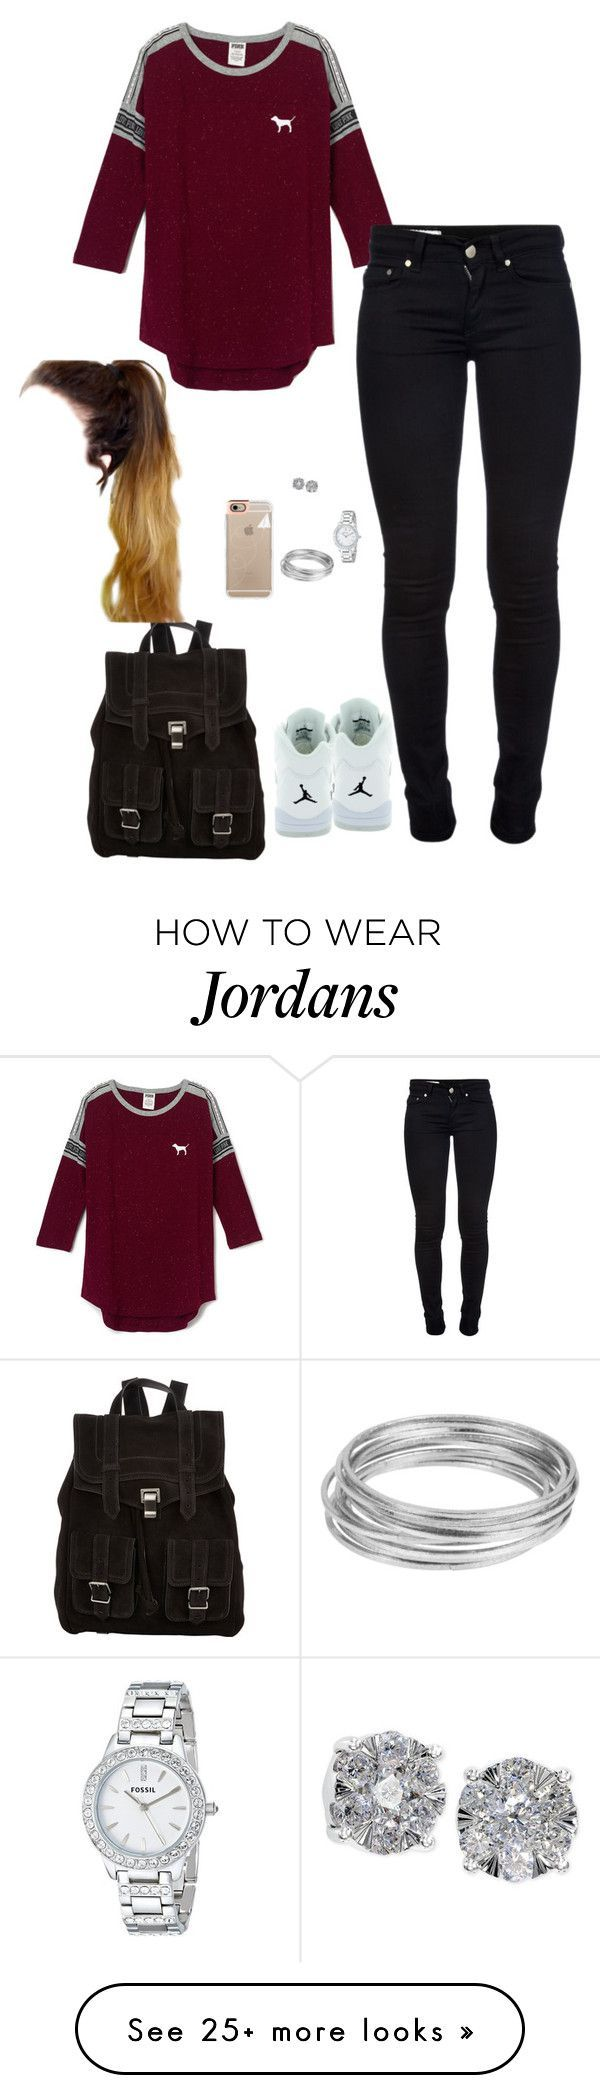 """"""".."""" by princessteauna on Polyvore featuring Dondup, Retrò, Effy Jewelry, Casetify, Worthington and Proenza Schouler"""